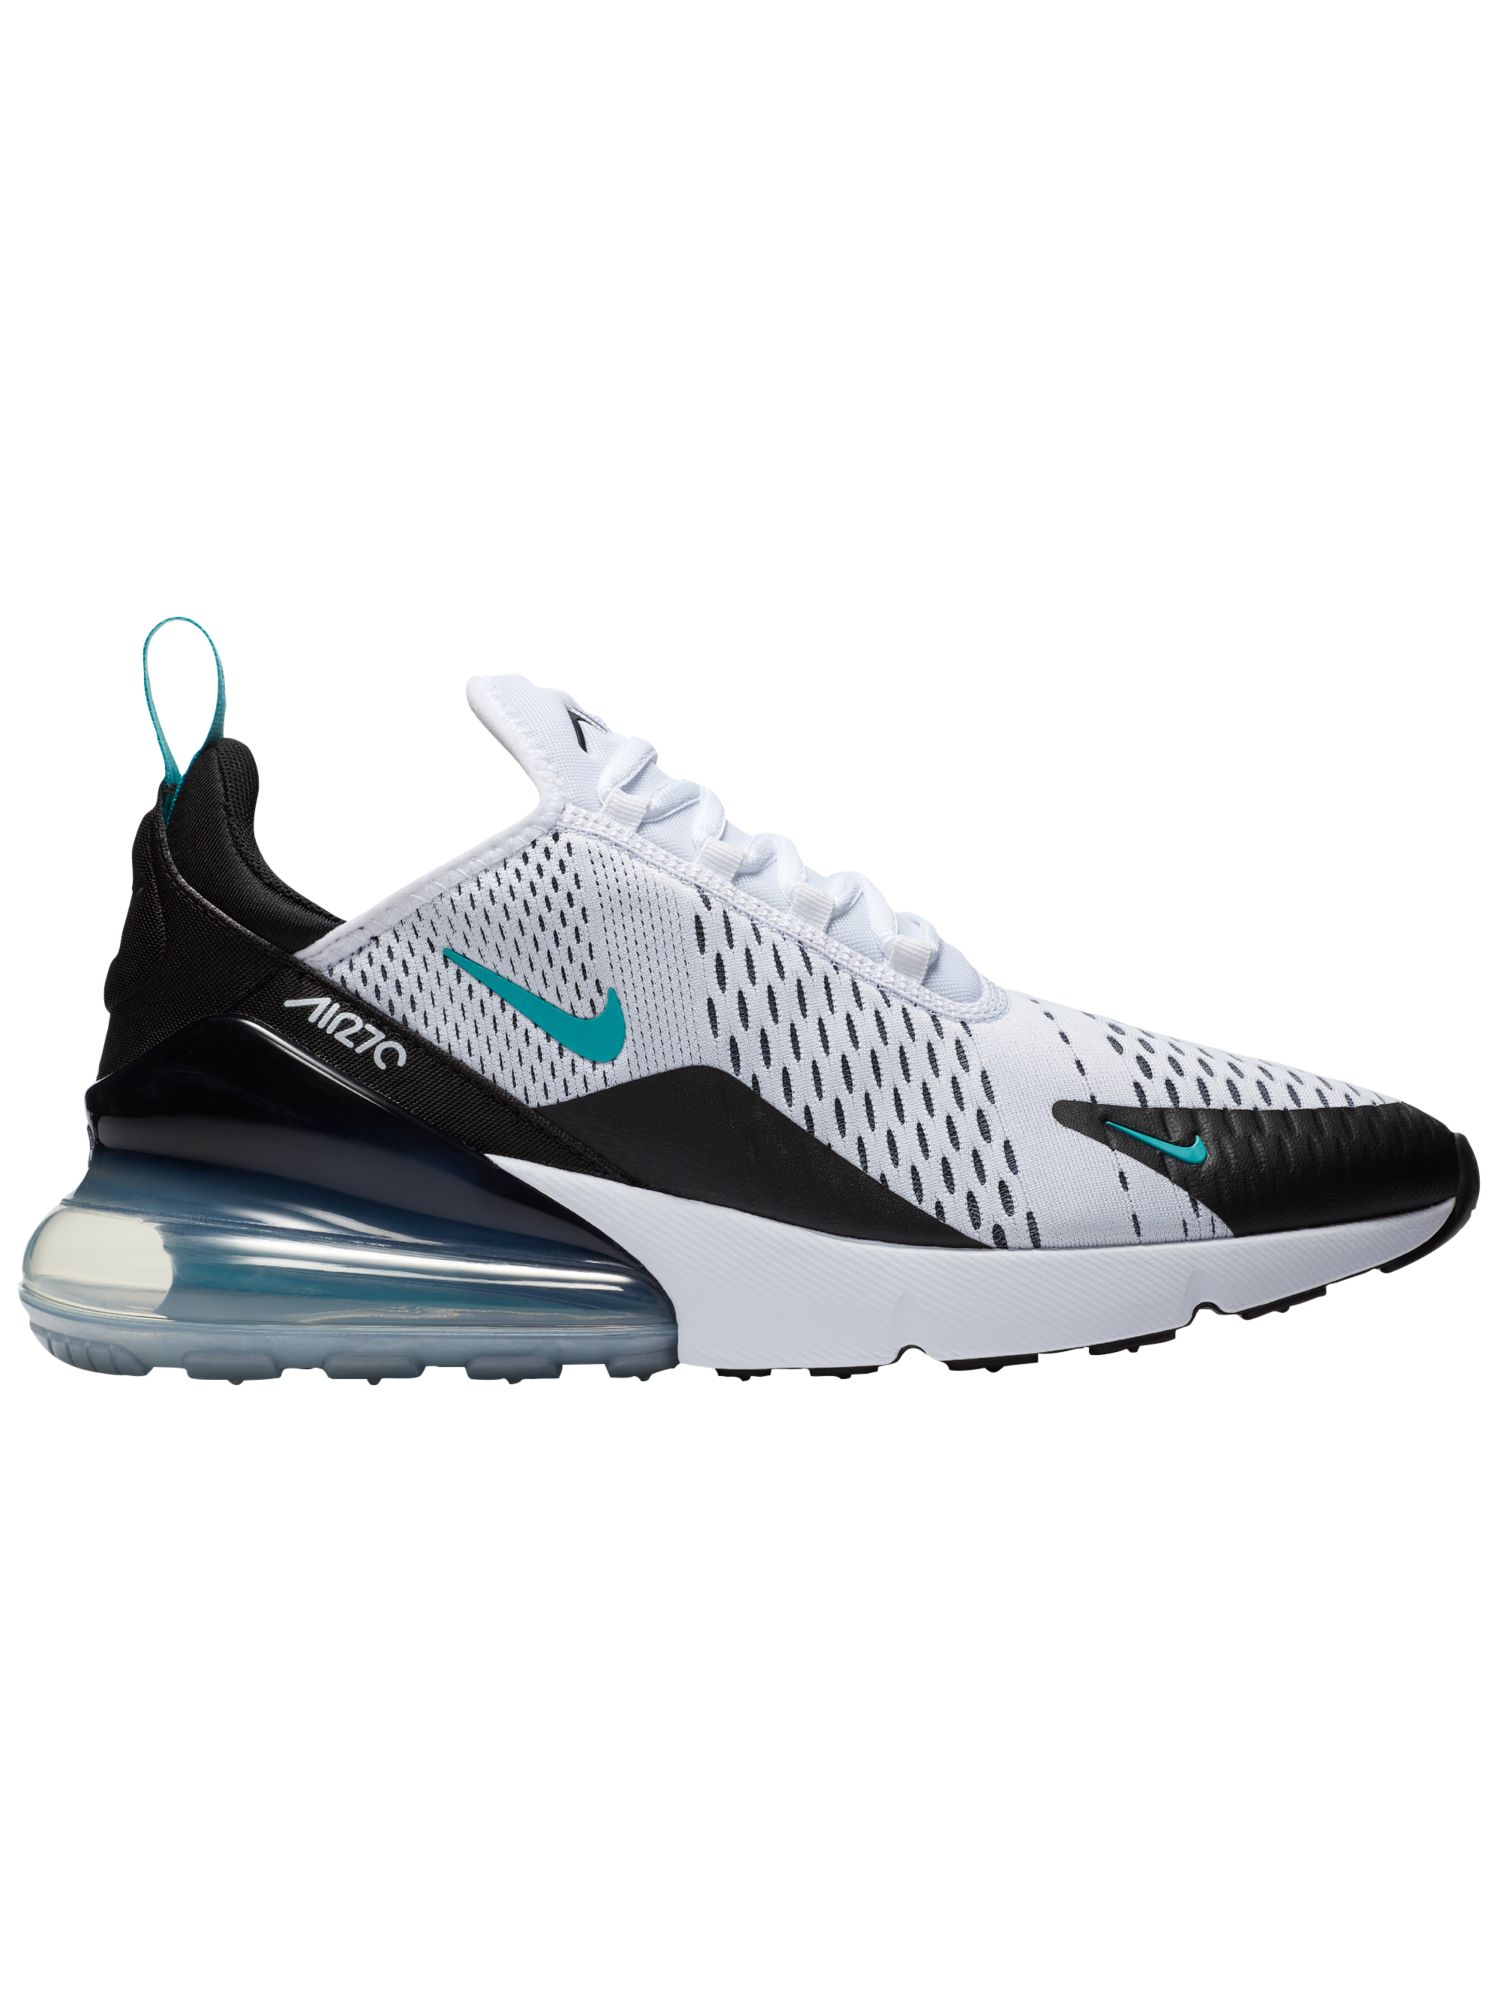 Nike Air Max 270 Men's Running Shoes Black White Dusty Cactus by